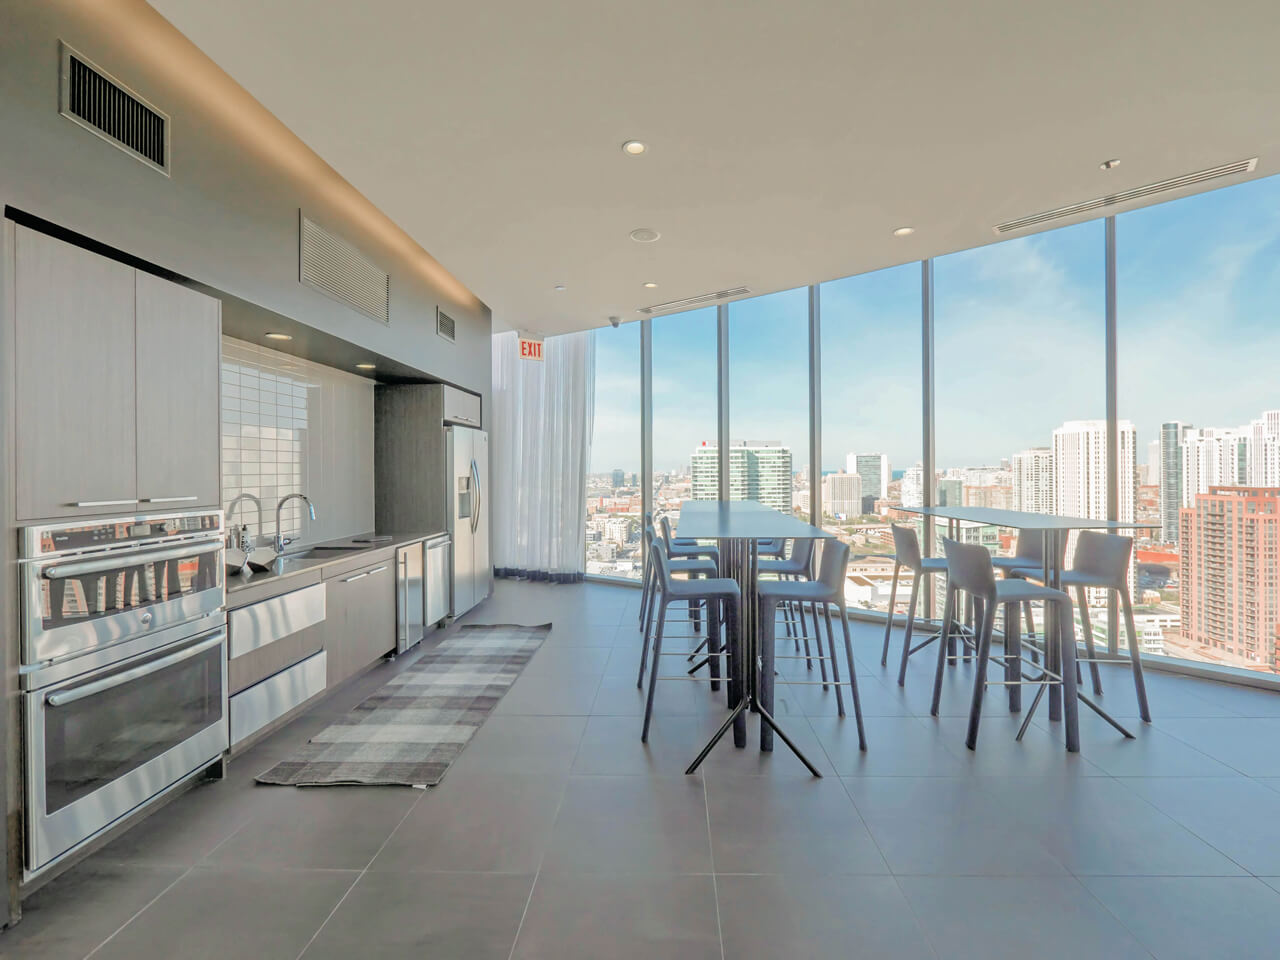 Best apartment rental service in Chicago - The Parker Fulton Market